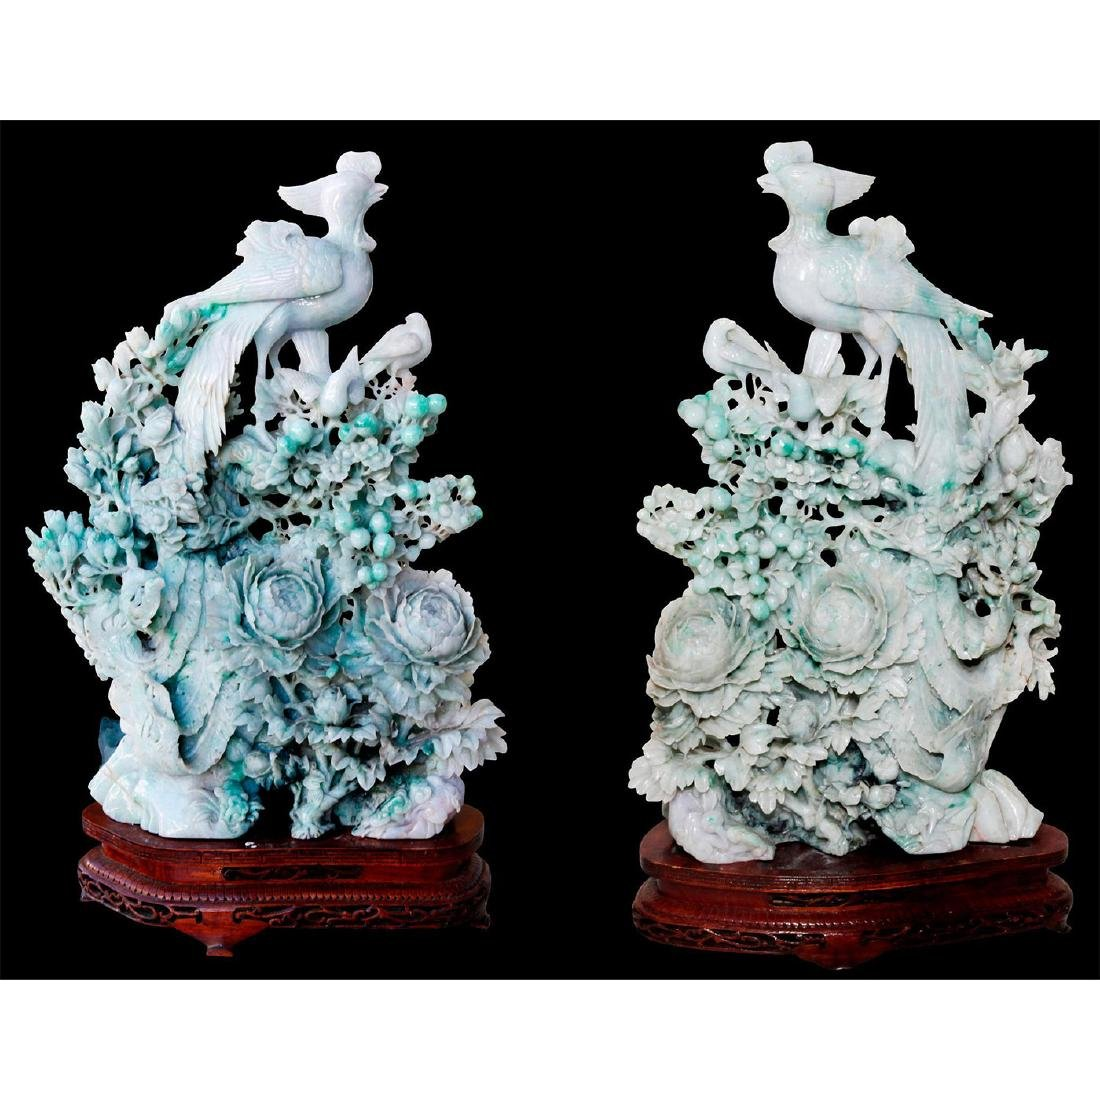 PAIR OF CHINESE CARVED JADE PHEASANT BIRDS, WOODEN